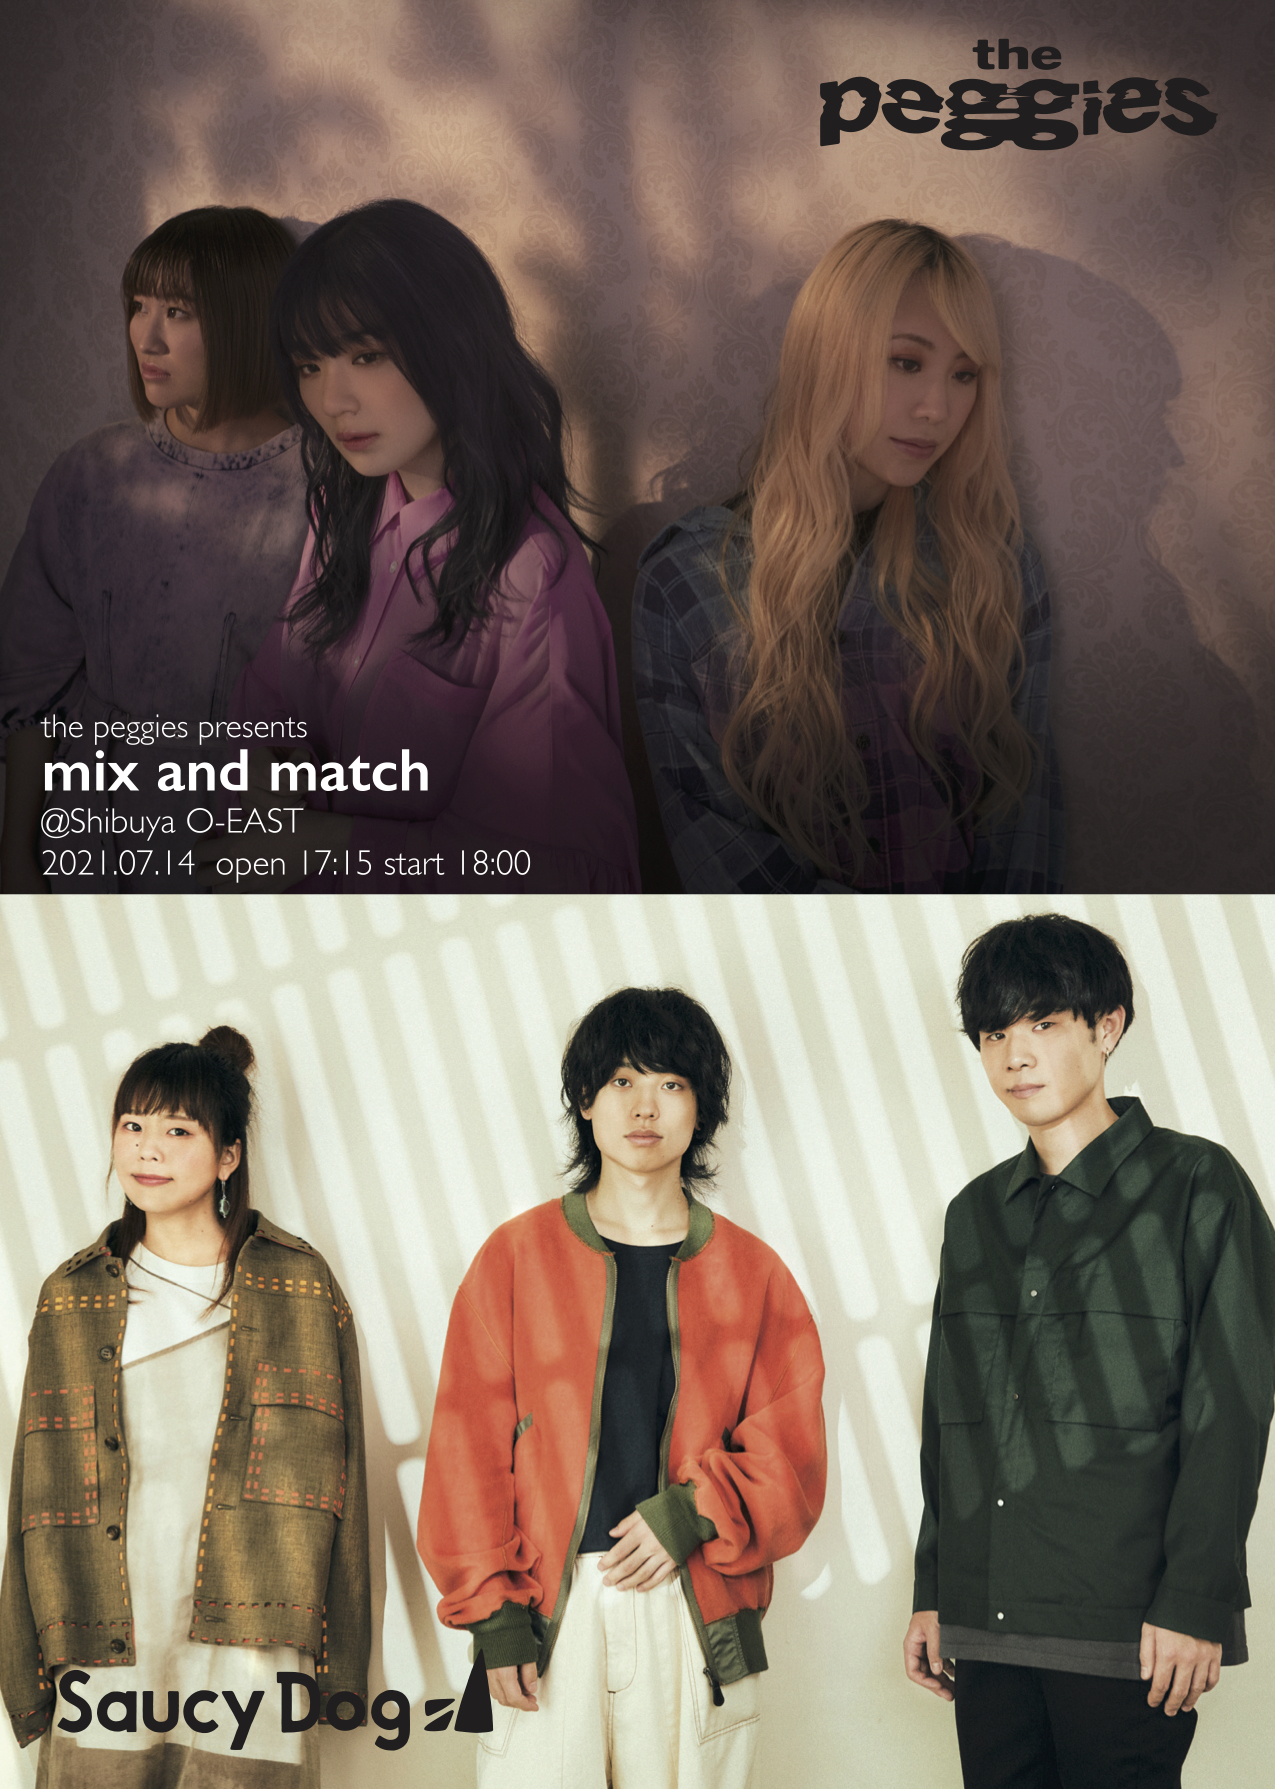 the peggies presents 「mix and match」〜the peggies×Saucy Dog〜 フライヤー